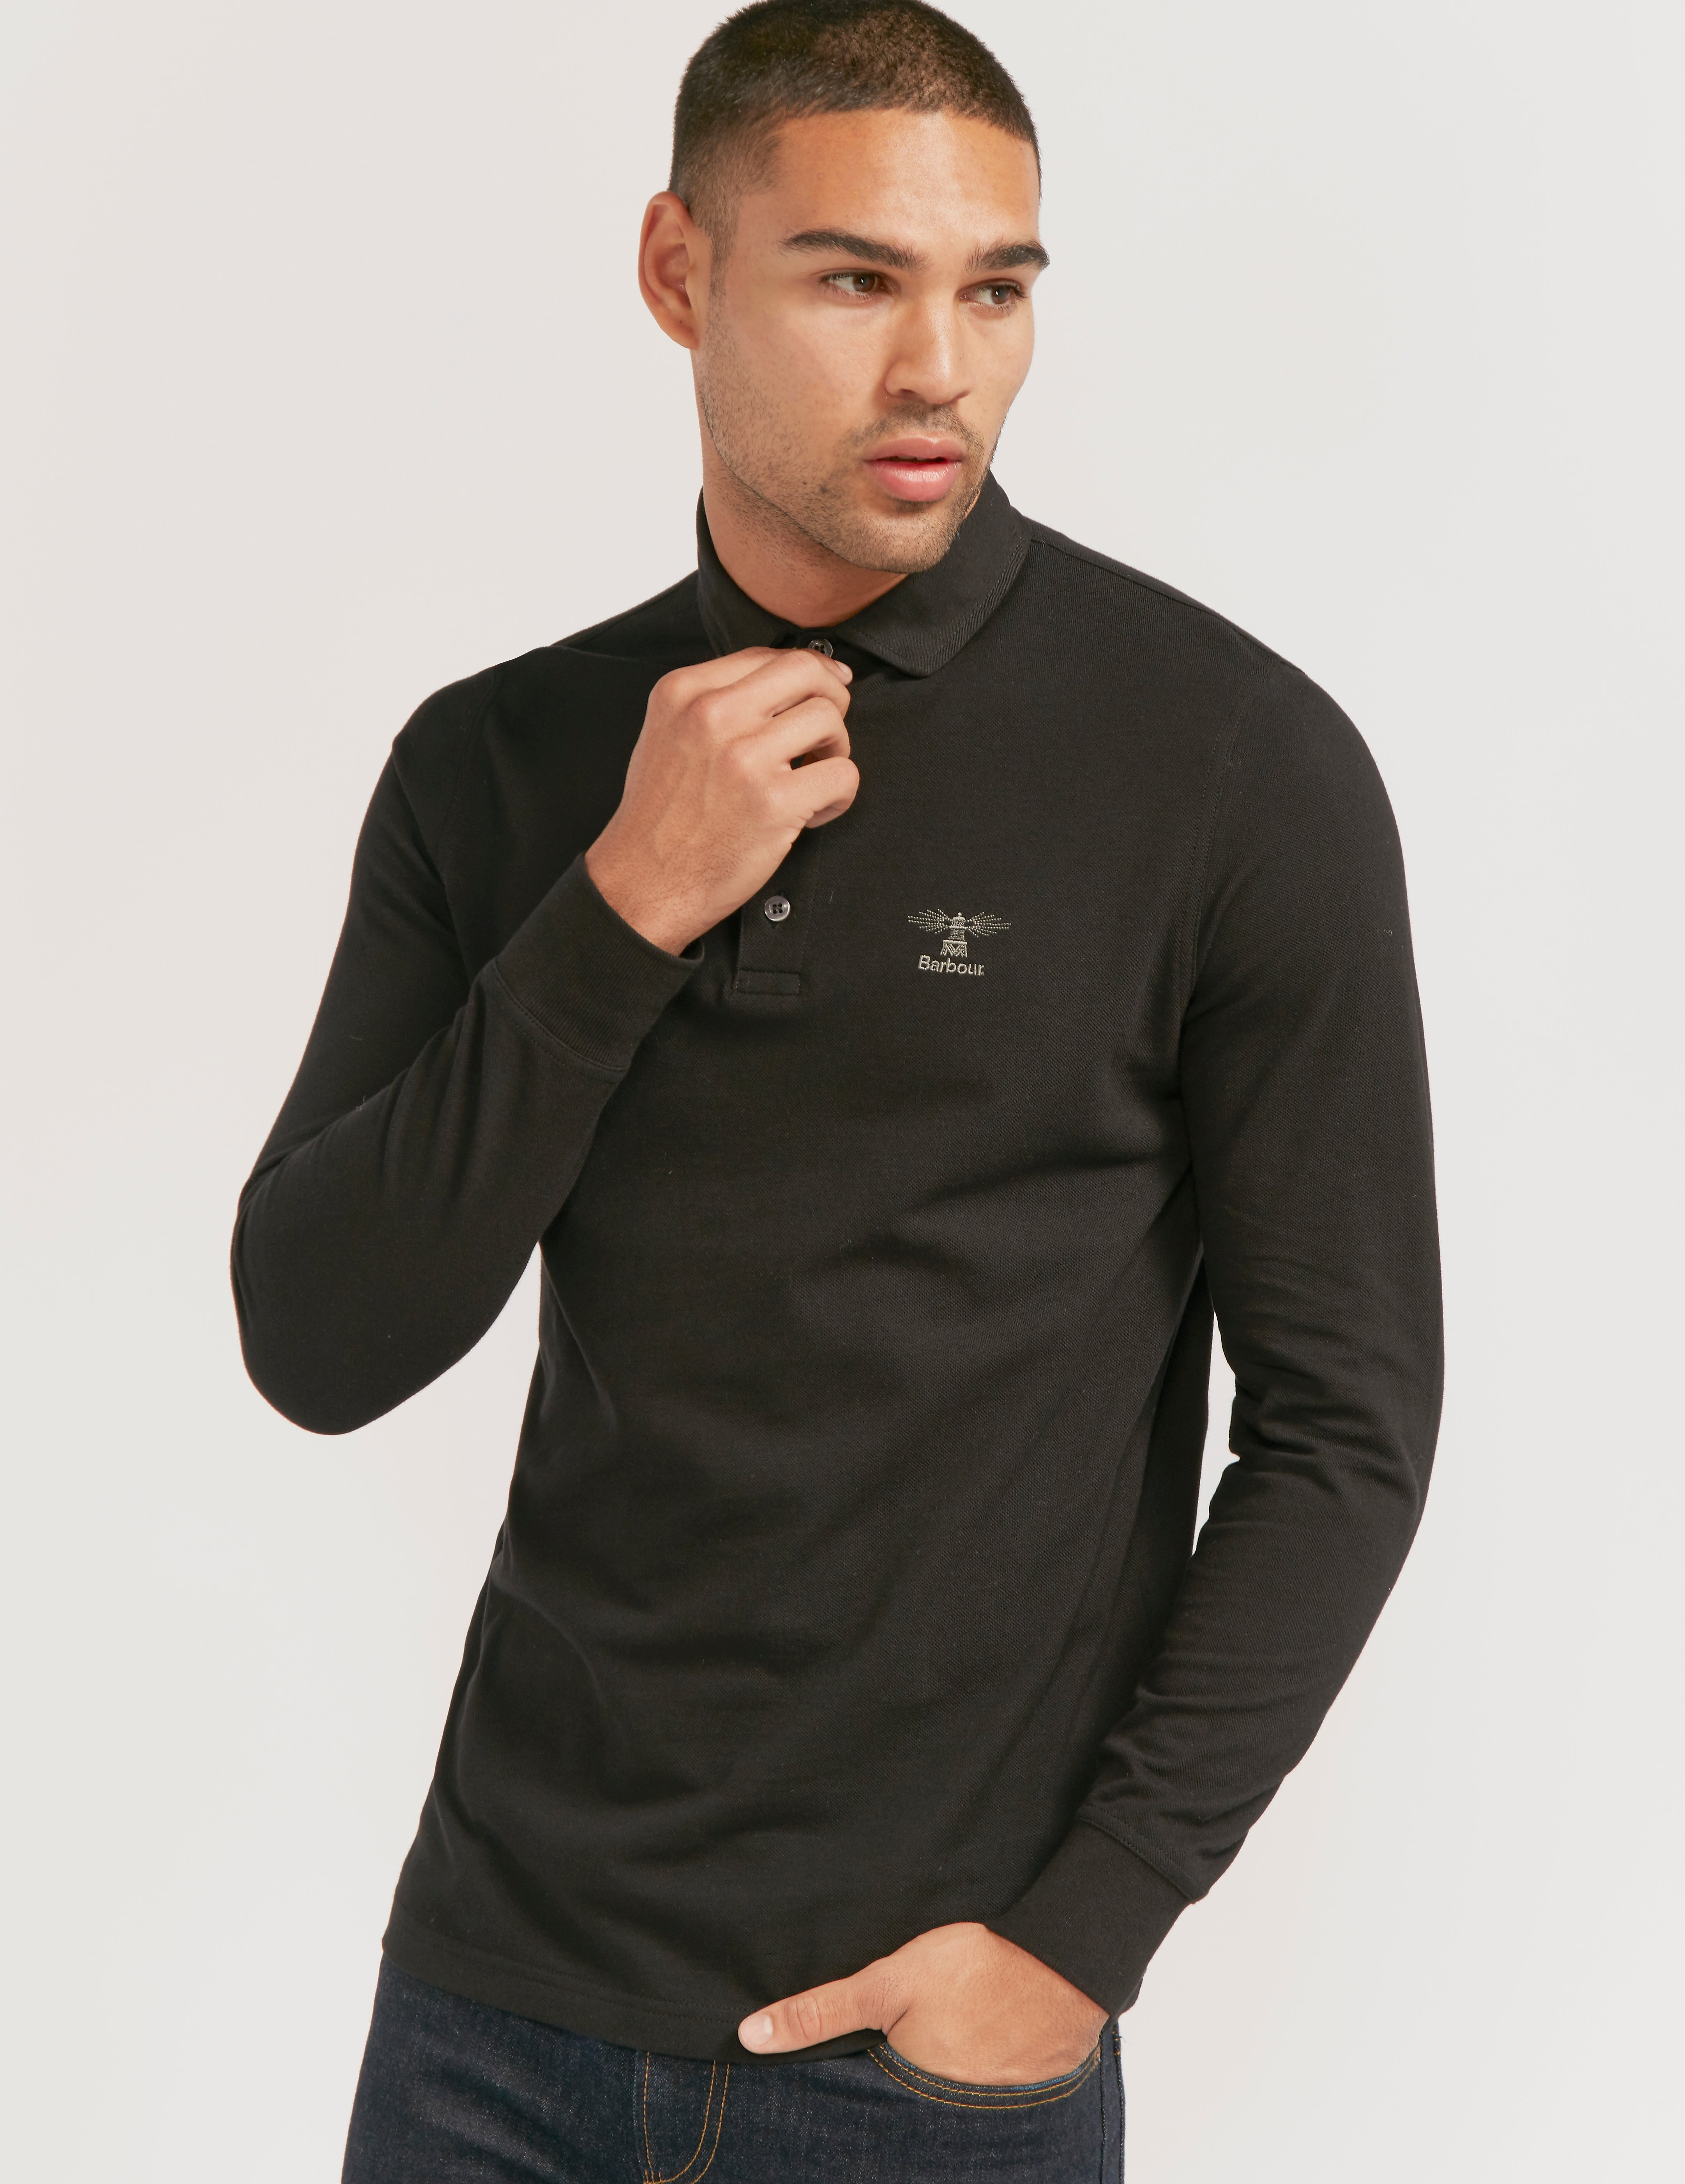 Barbour P Standard long Sleeve Polo